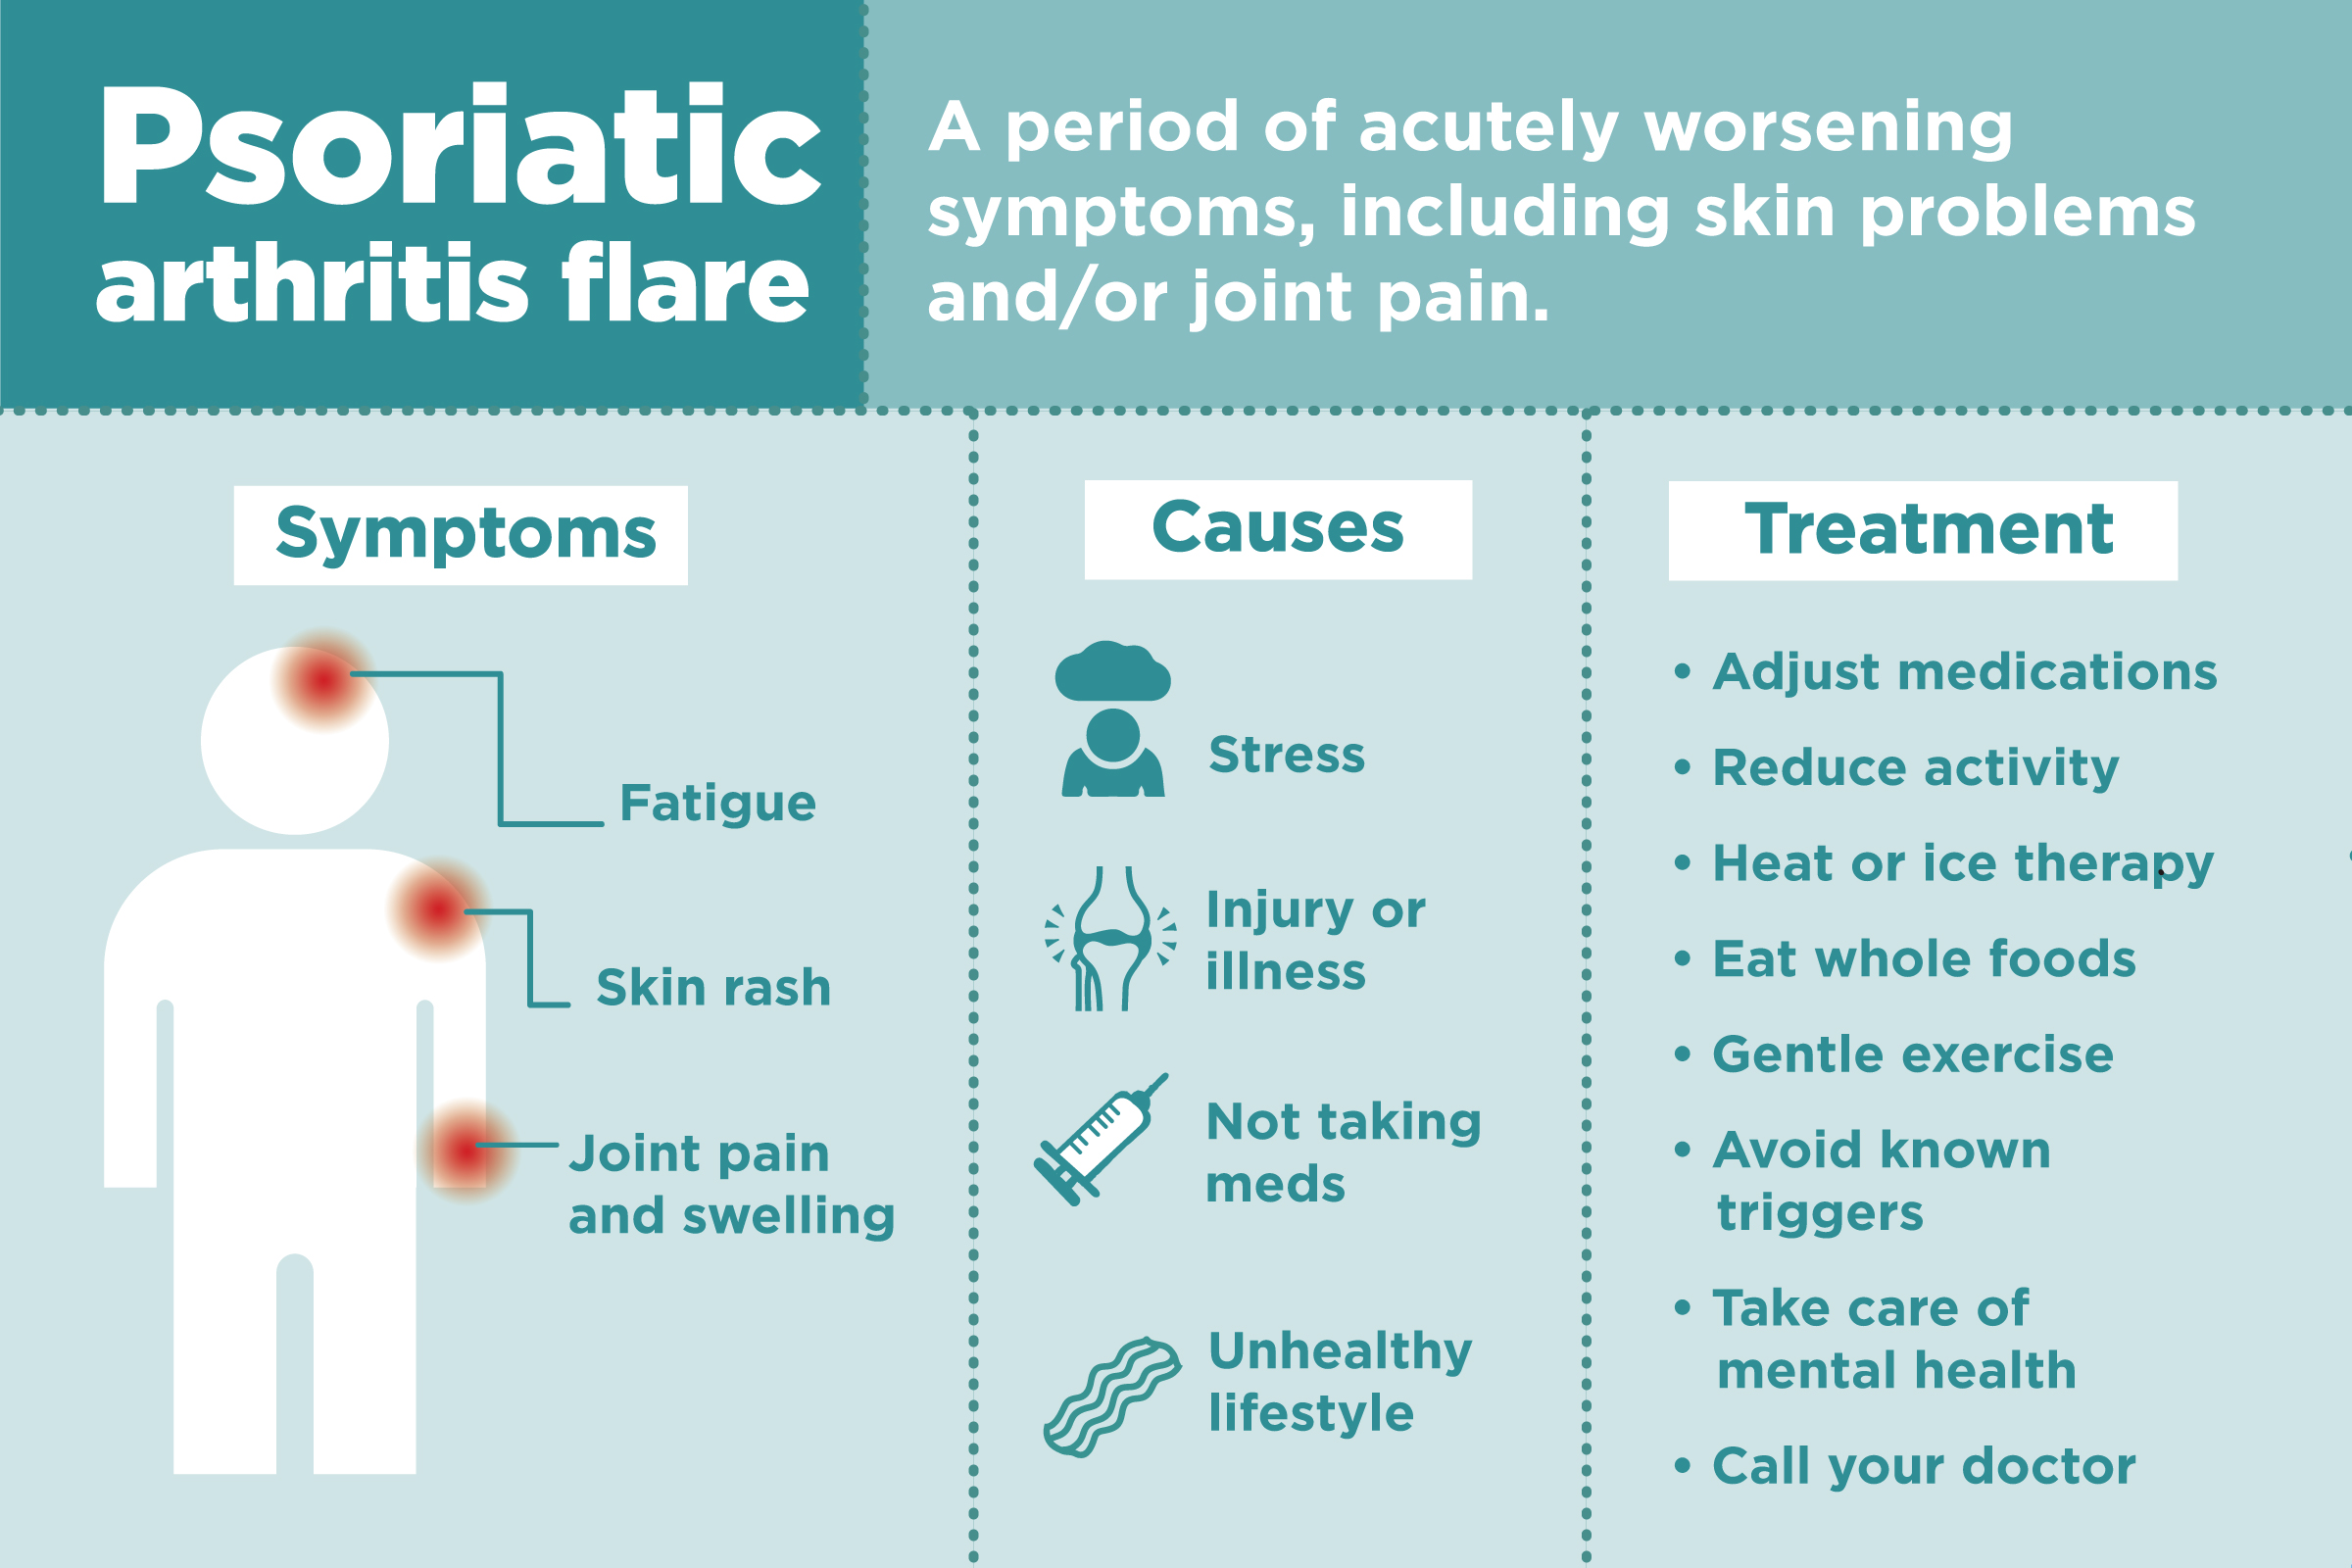 Psoriatic Arthritis Flares: How to Treat Them